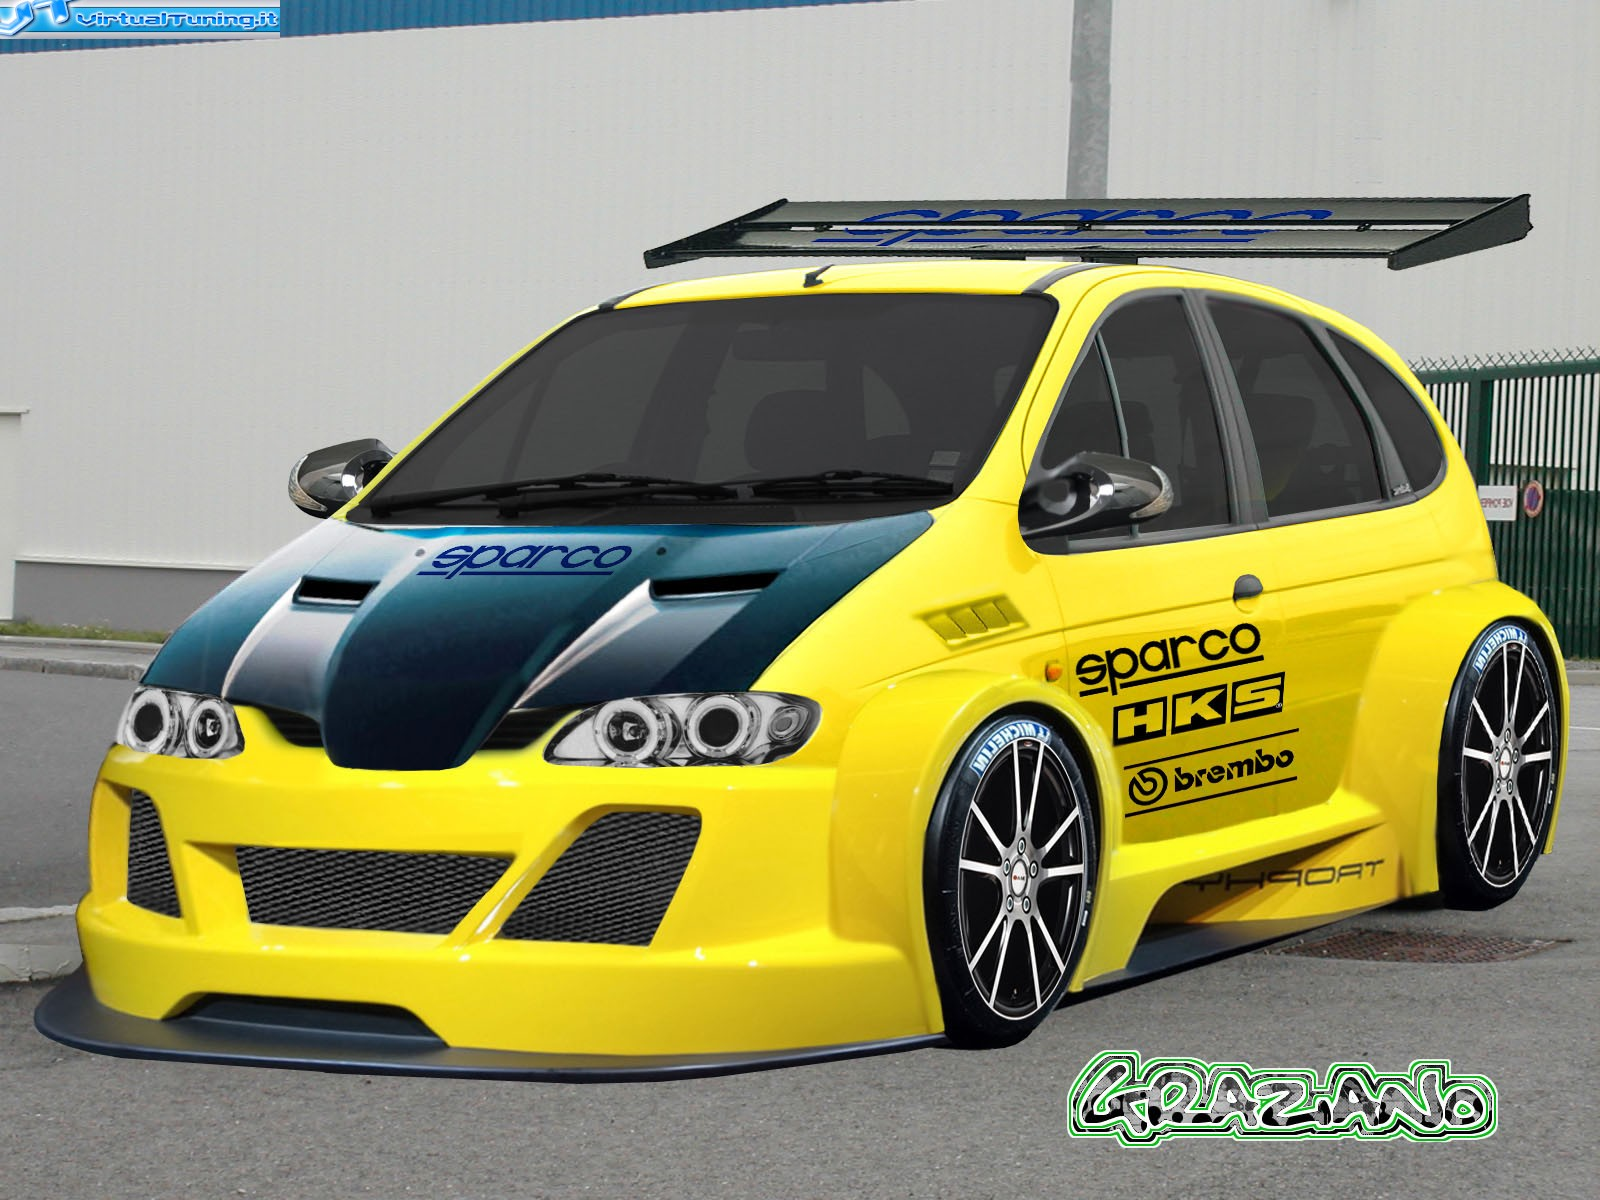 renault megane sc nic 39 98 by ziano virtualtuning it. Black Bedroom Furniture Sets. Home Design Ideas